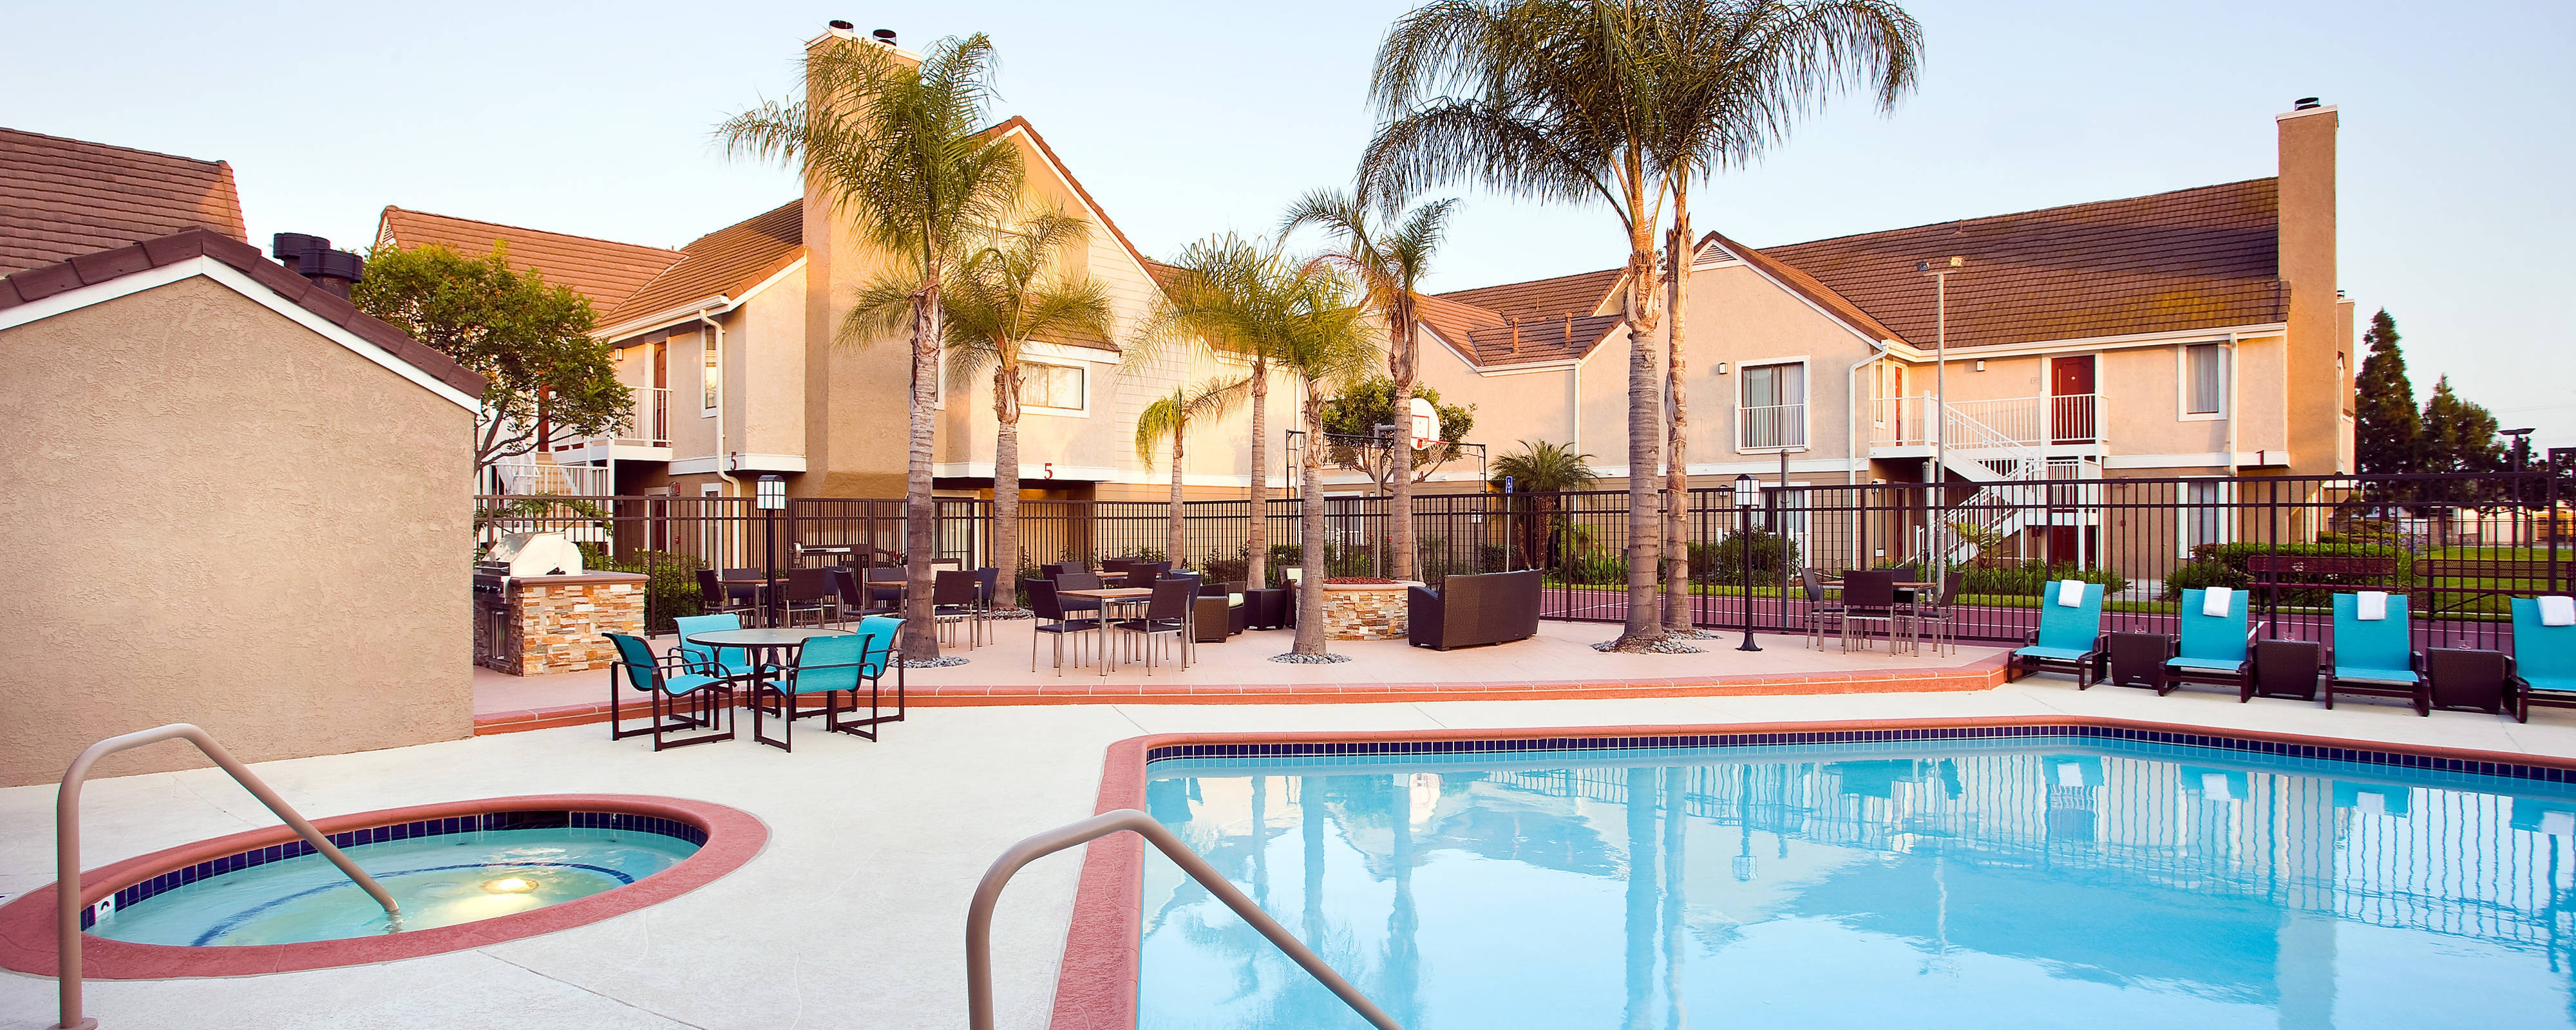 Hotels In Costa Mesa Ca Residence Inn Costa Mesa Newport Beach